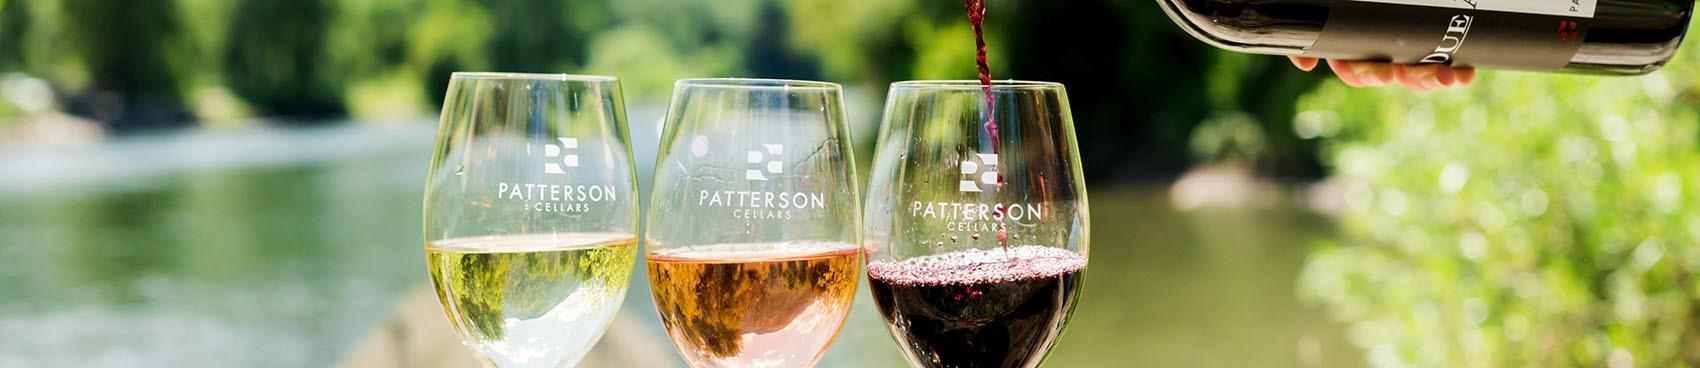 Purchase Tickets to Wine Club Appreciation BBQ SODO - Saturday, August 24 at Patterson Cellars on CellarPass